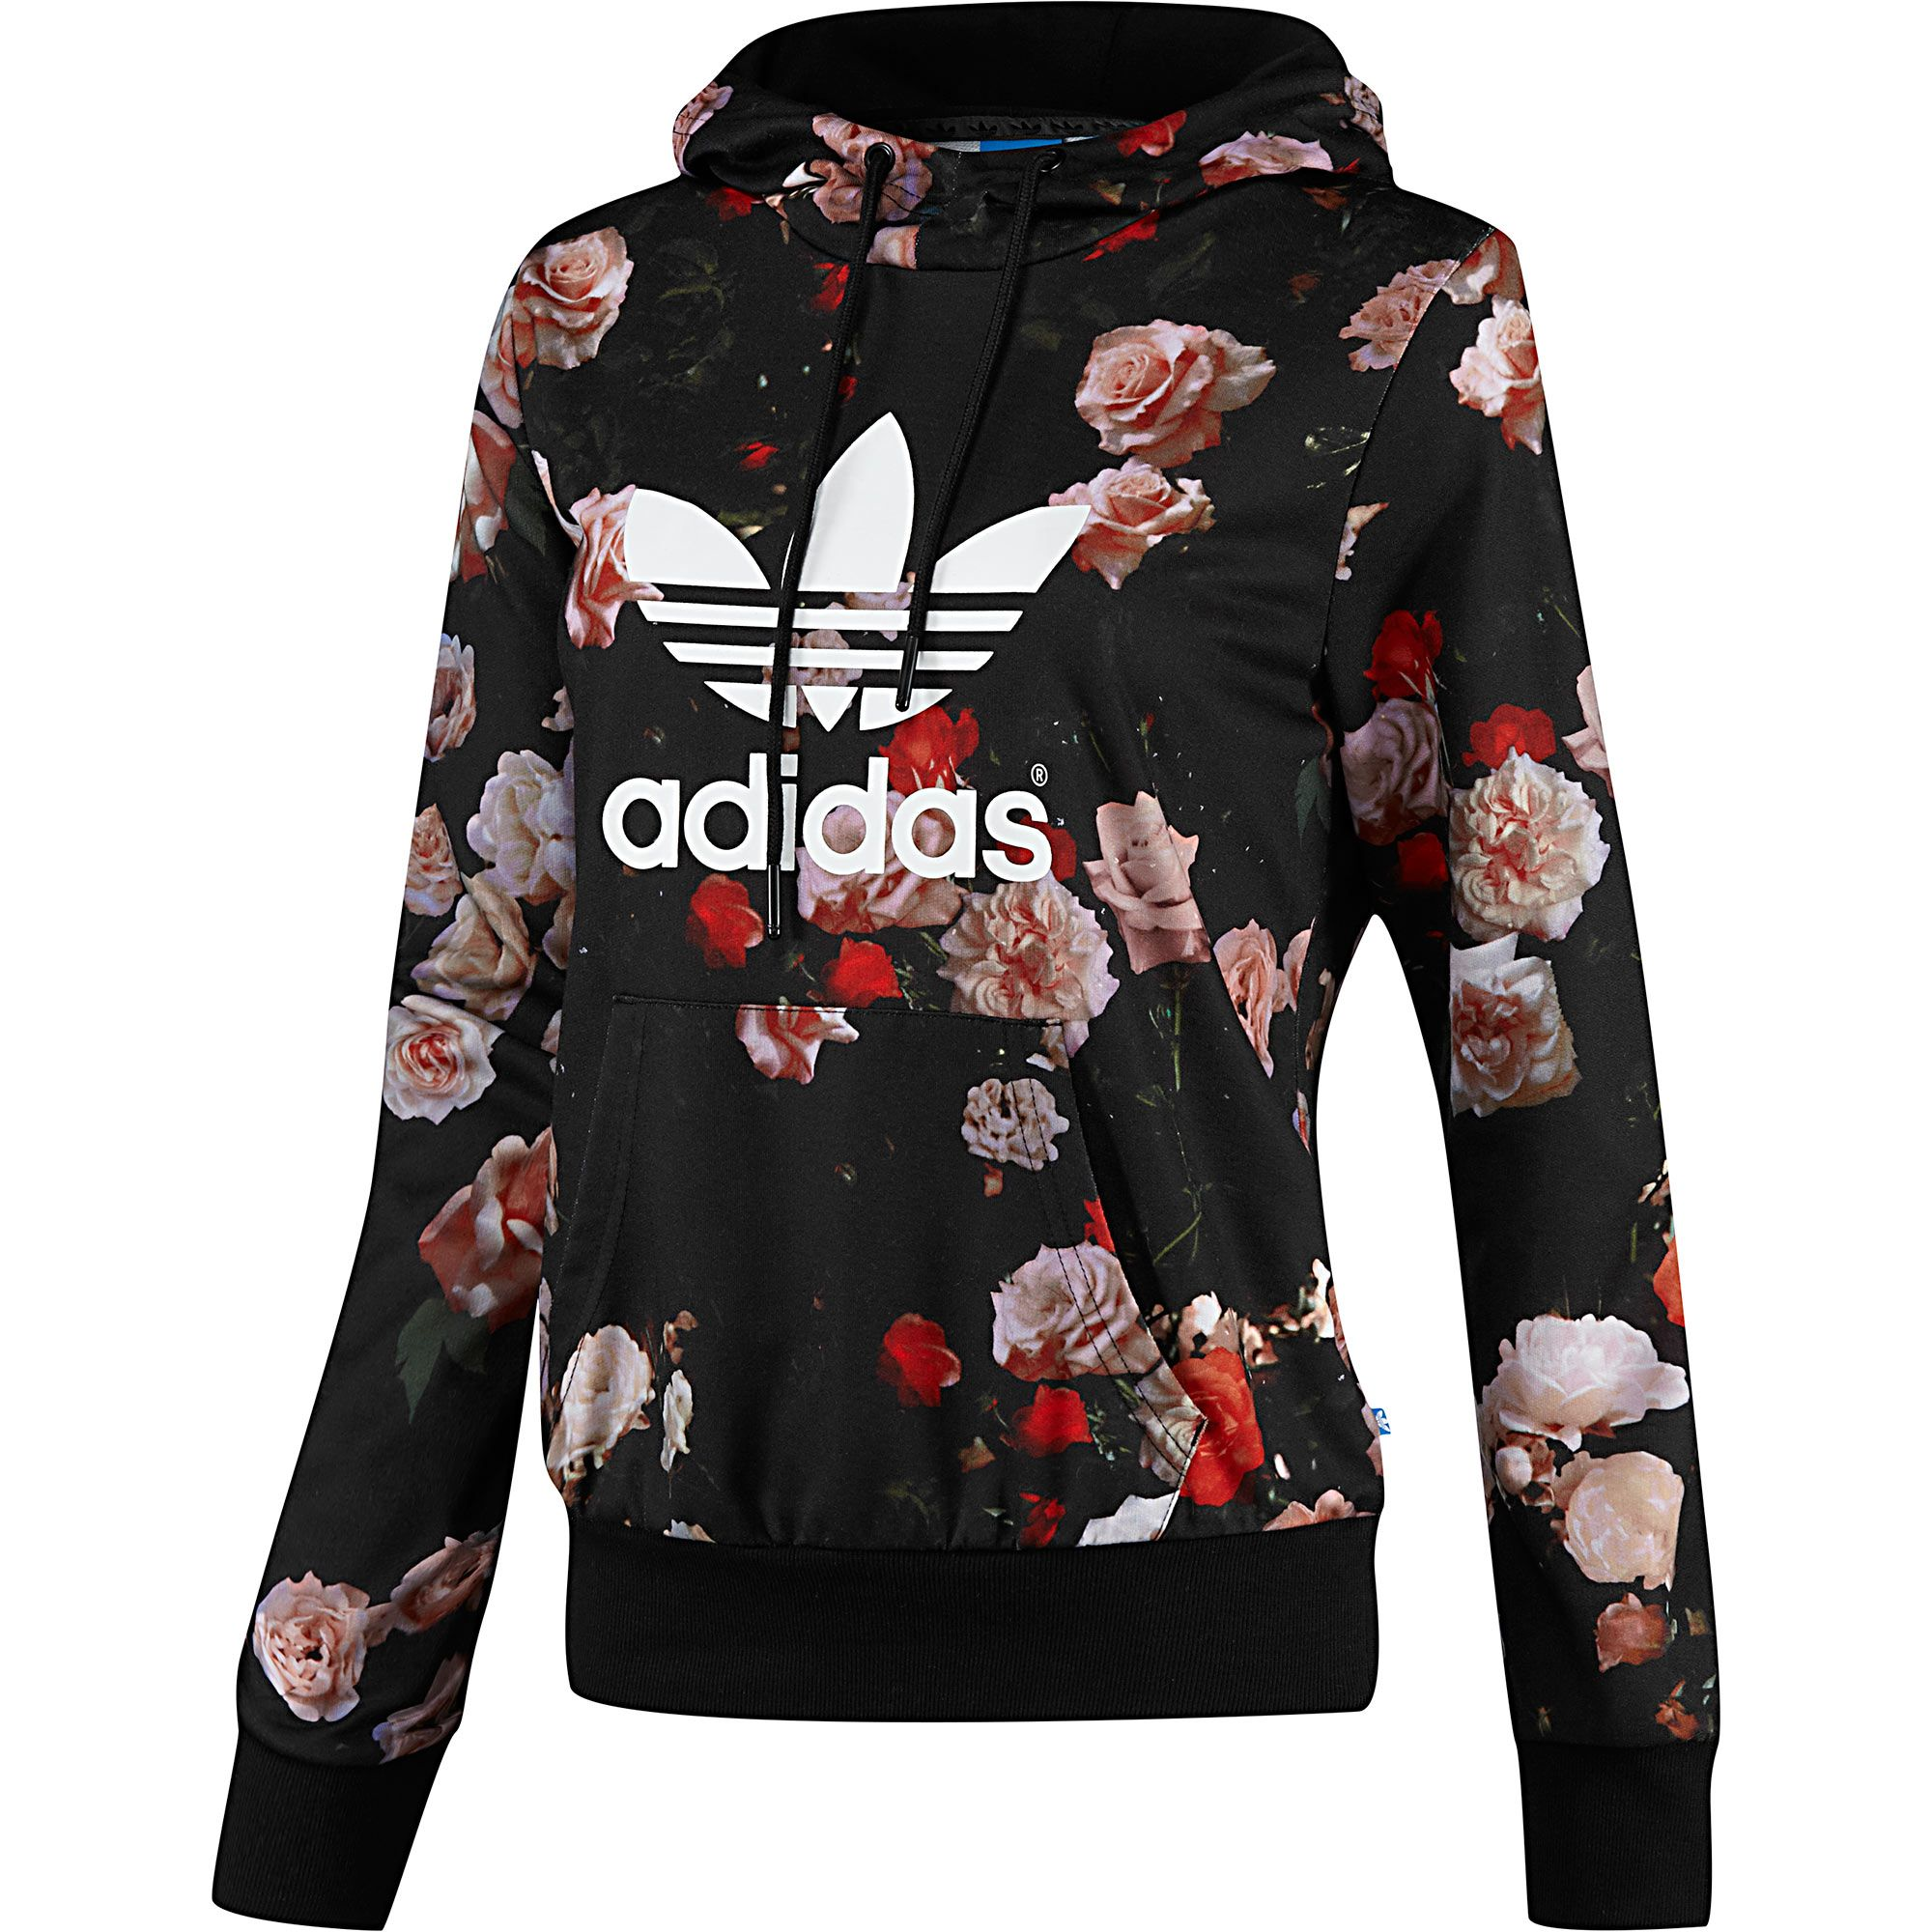 adidasrunning on adidas pullover und f r frauen. Black Bedroom Furniture Sets. Home Design Ideas